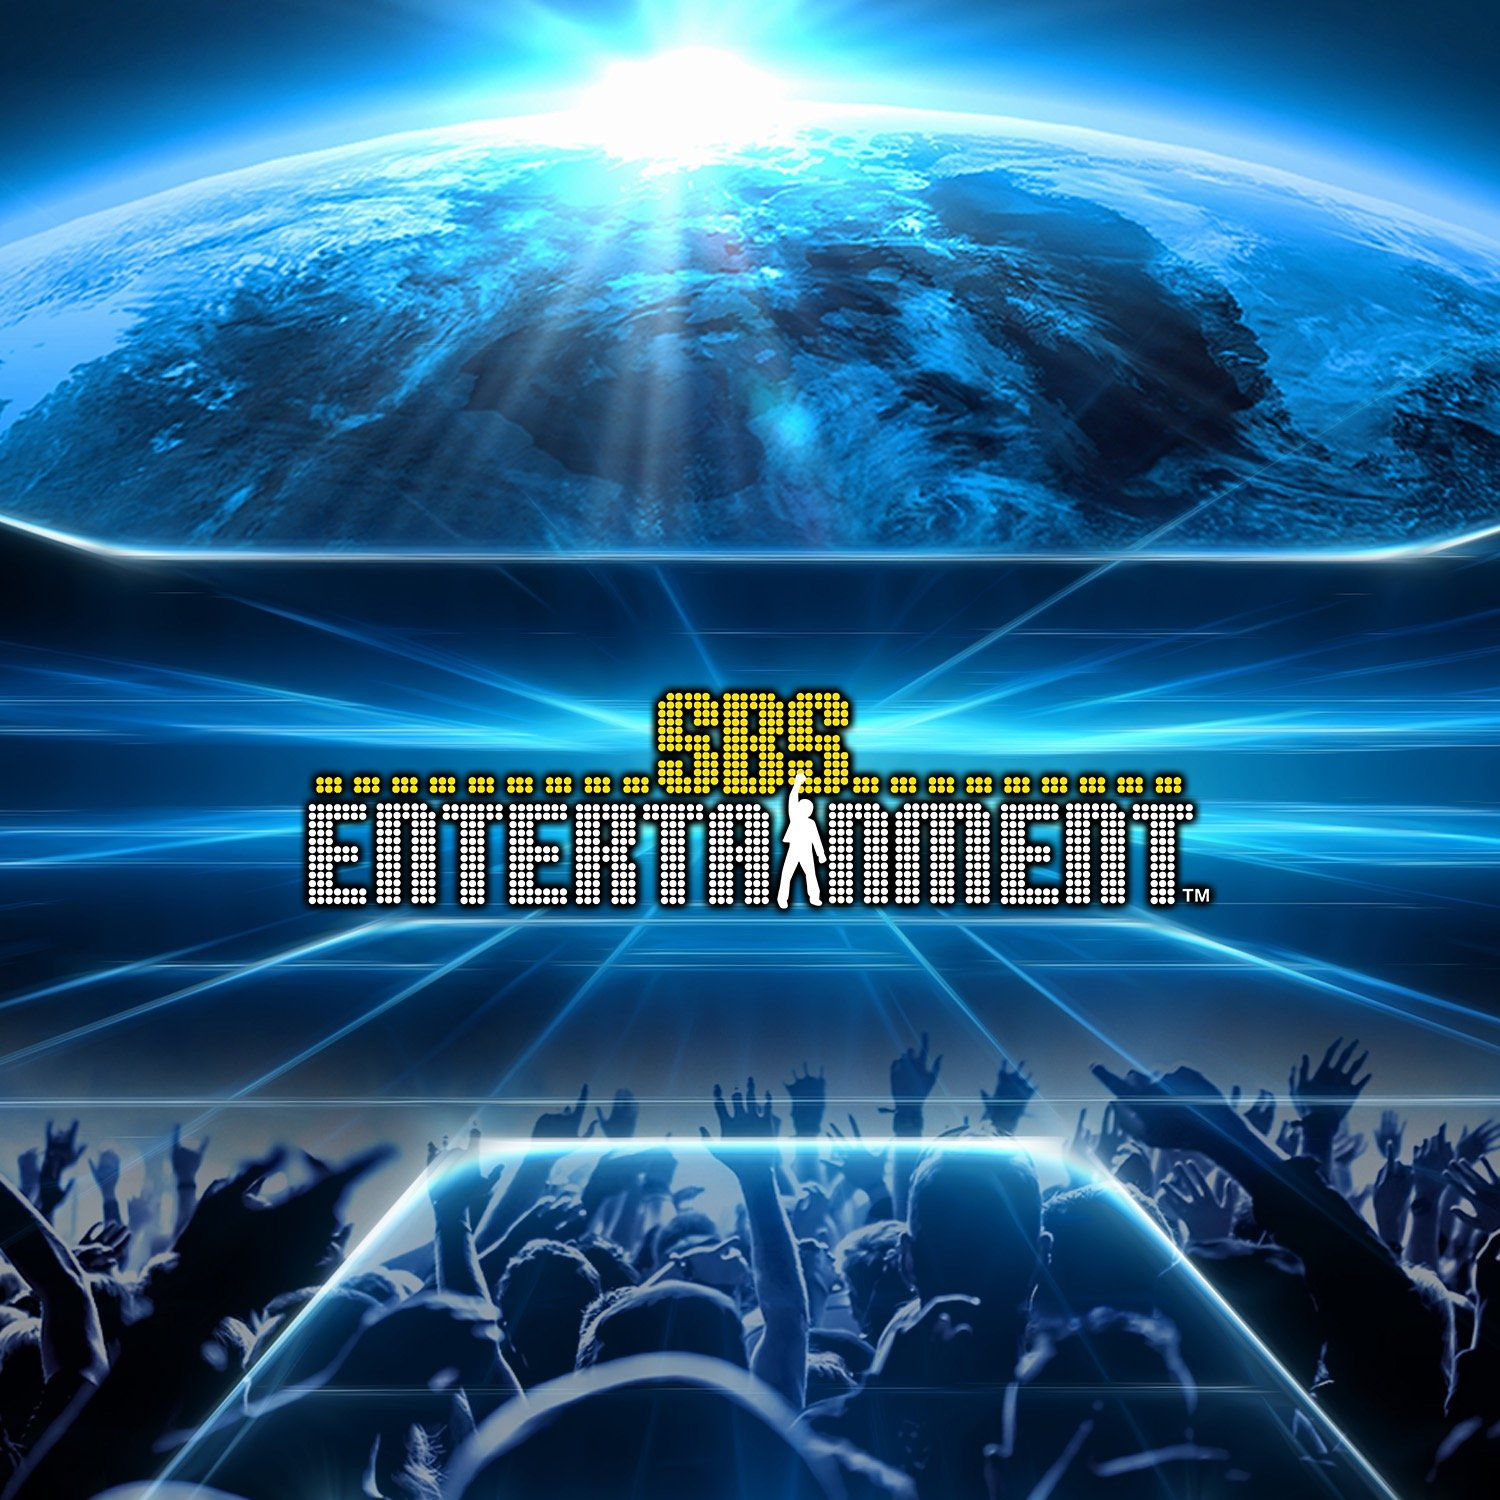 SBS Entertainment